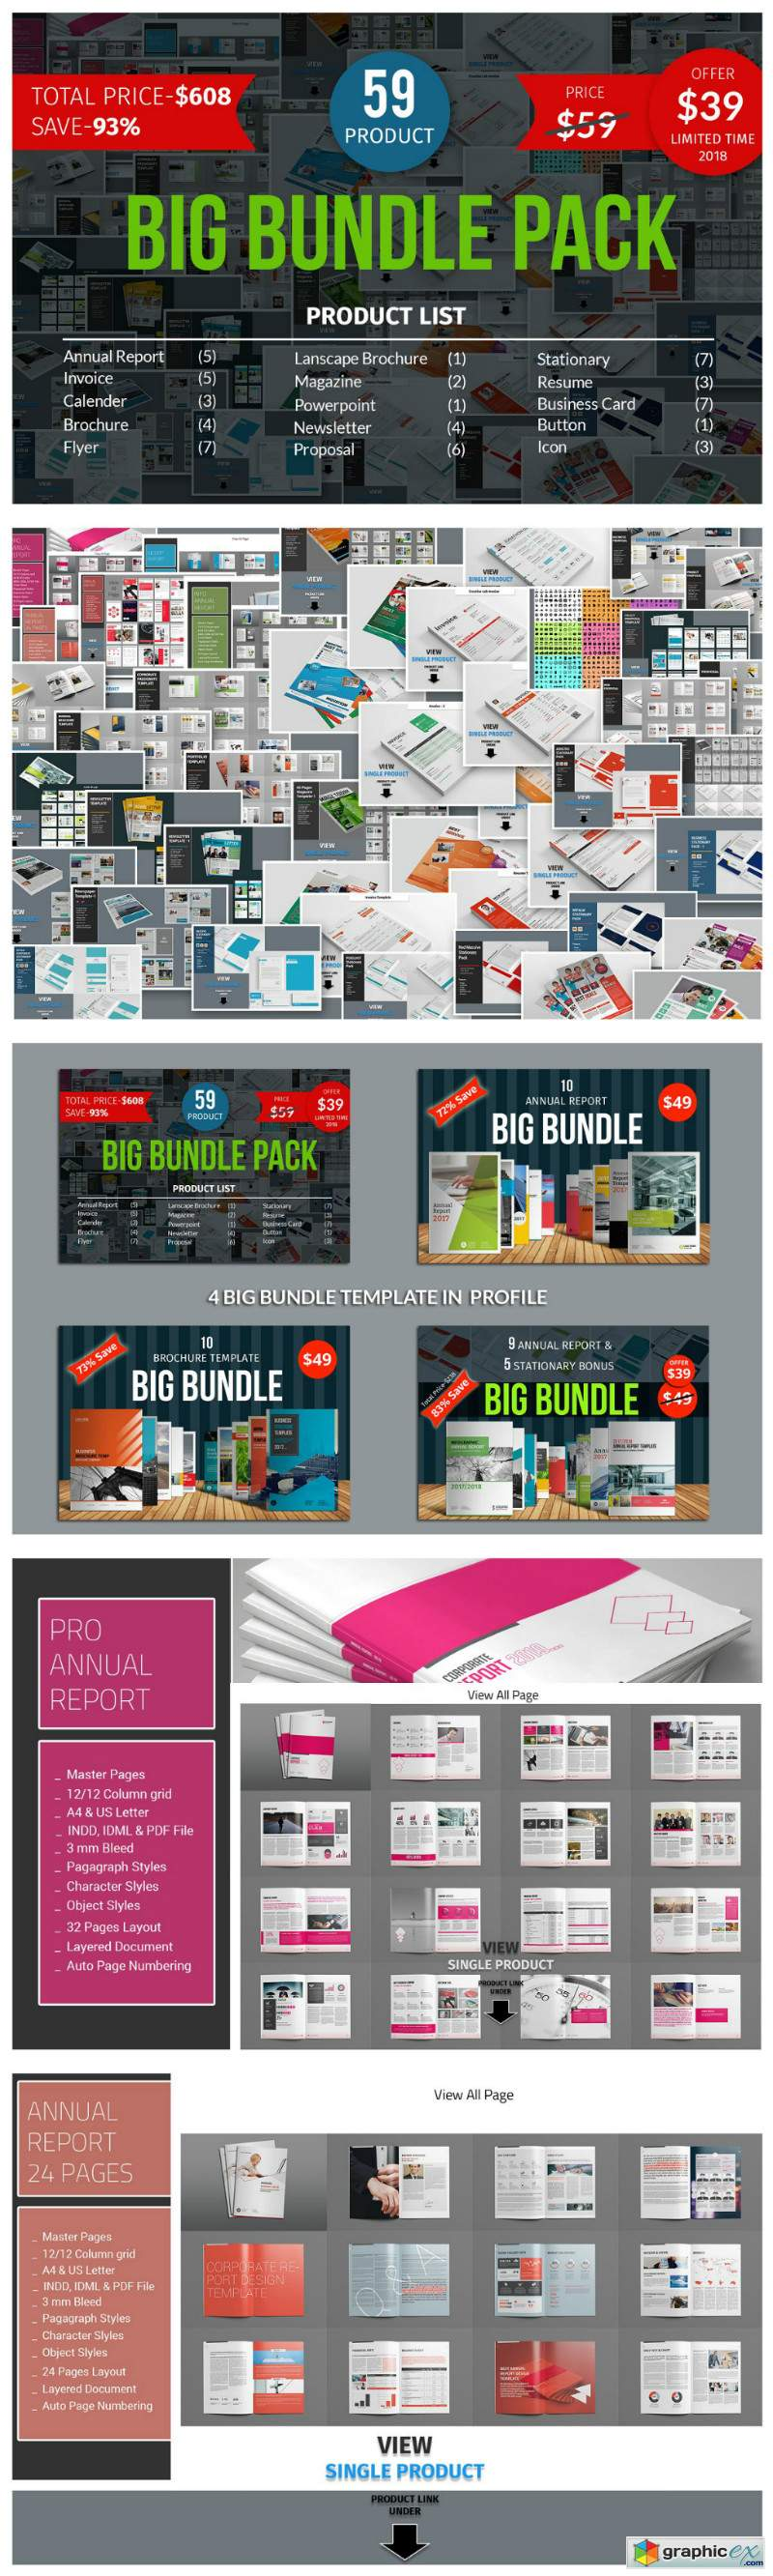 big bundle pack  u00bb free download vector stock image